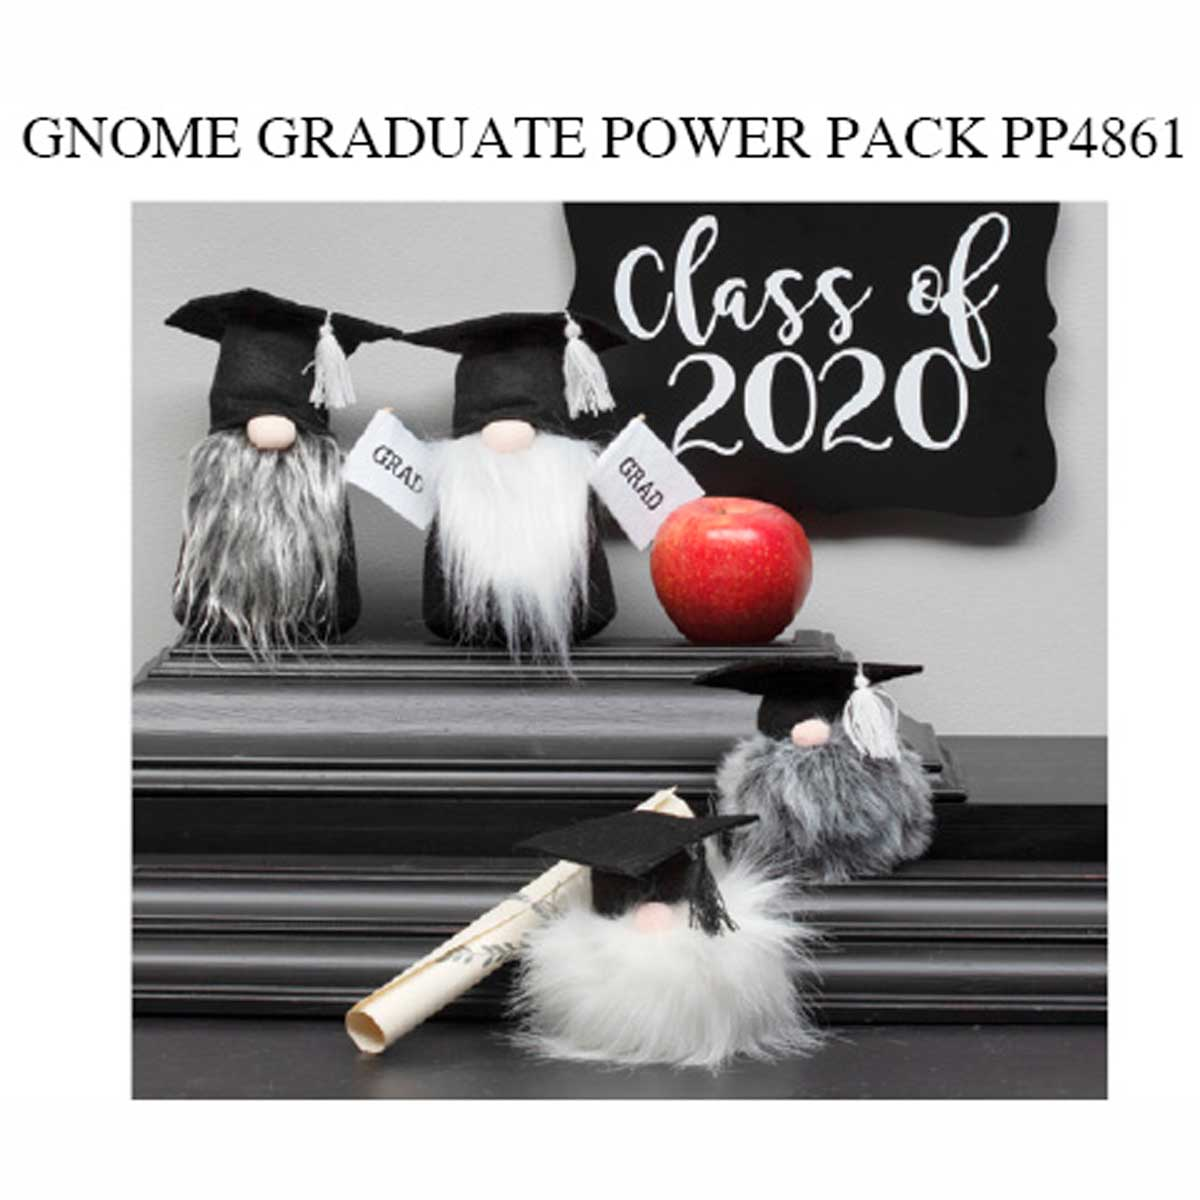 Graduate Gnome Power Pack 16 units PP4861